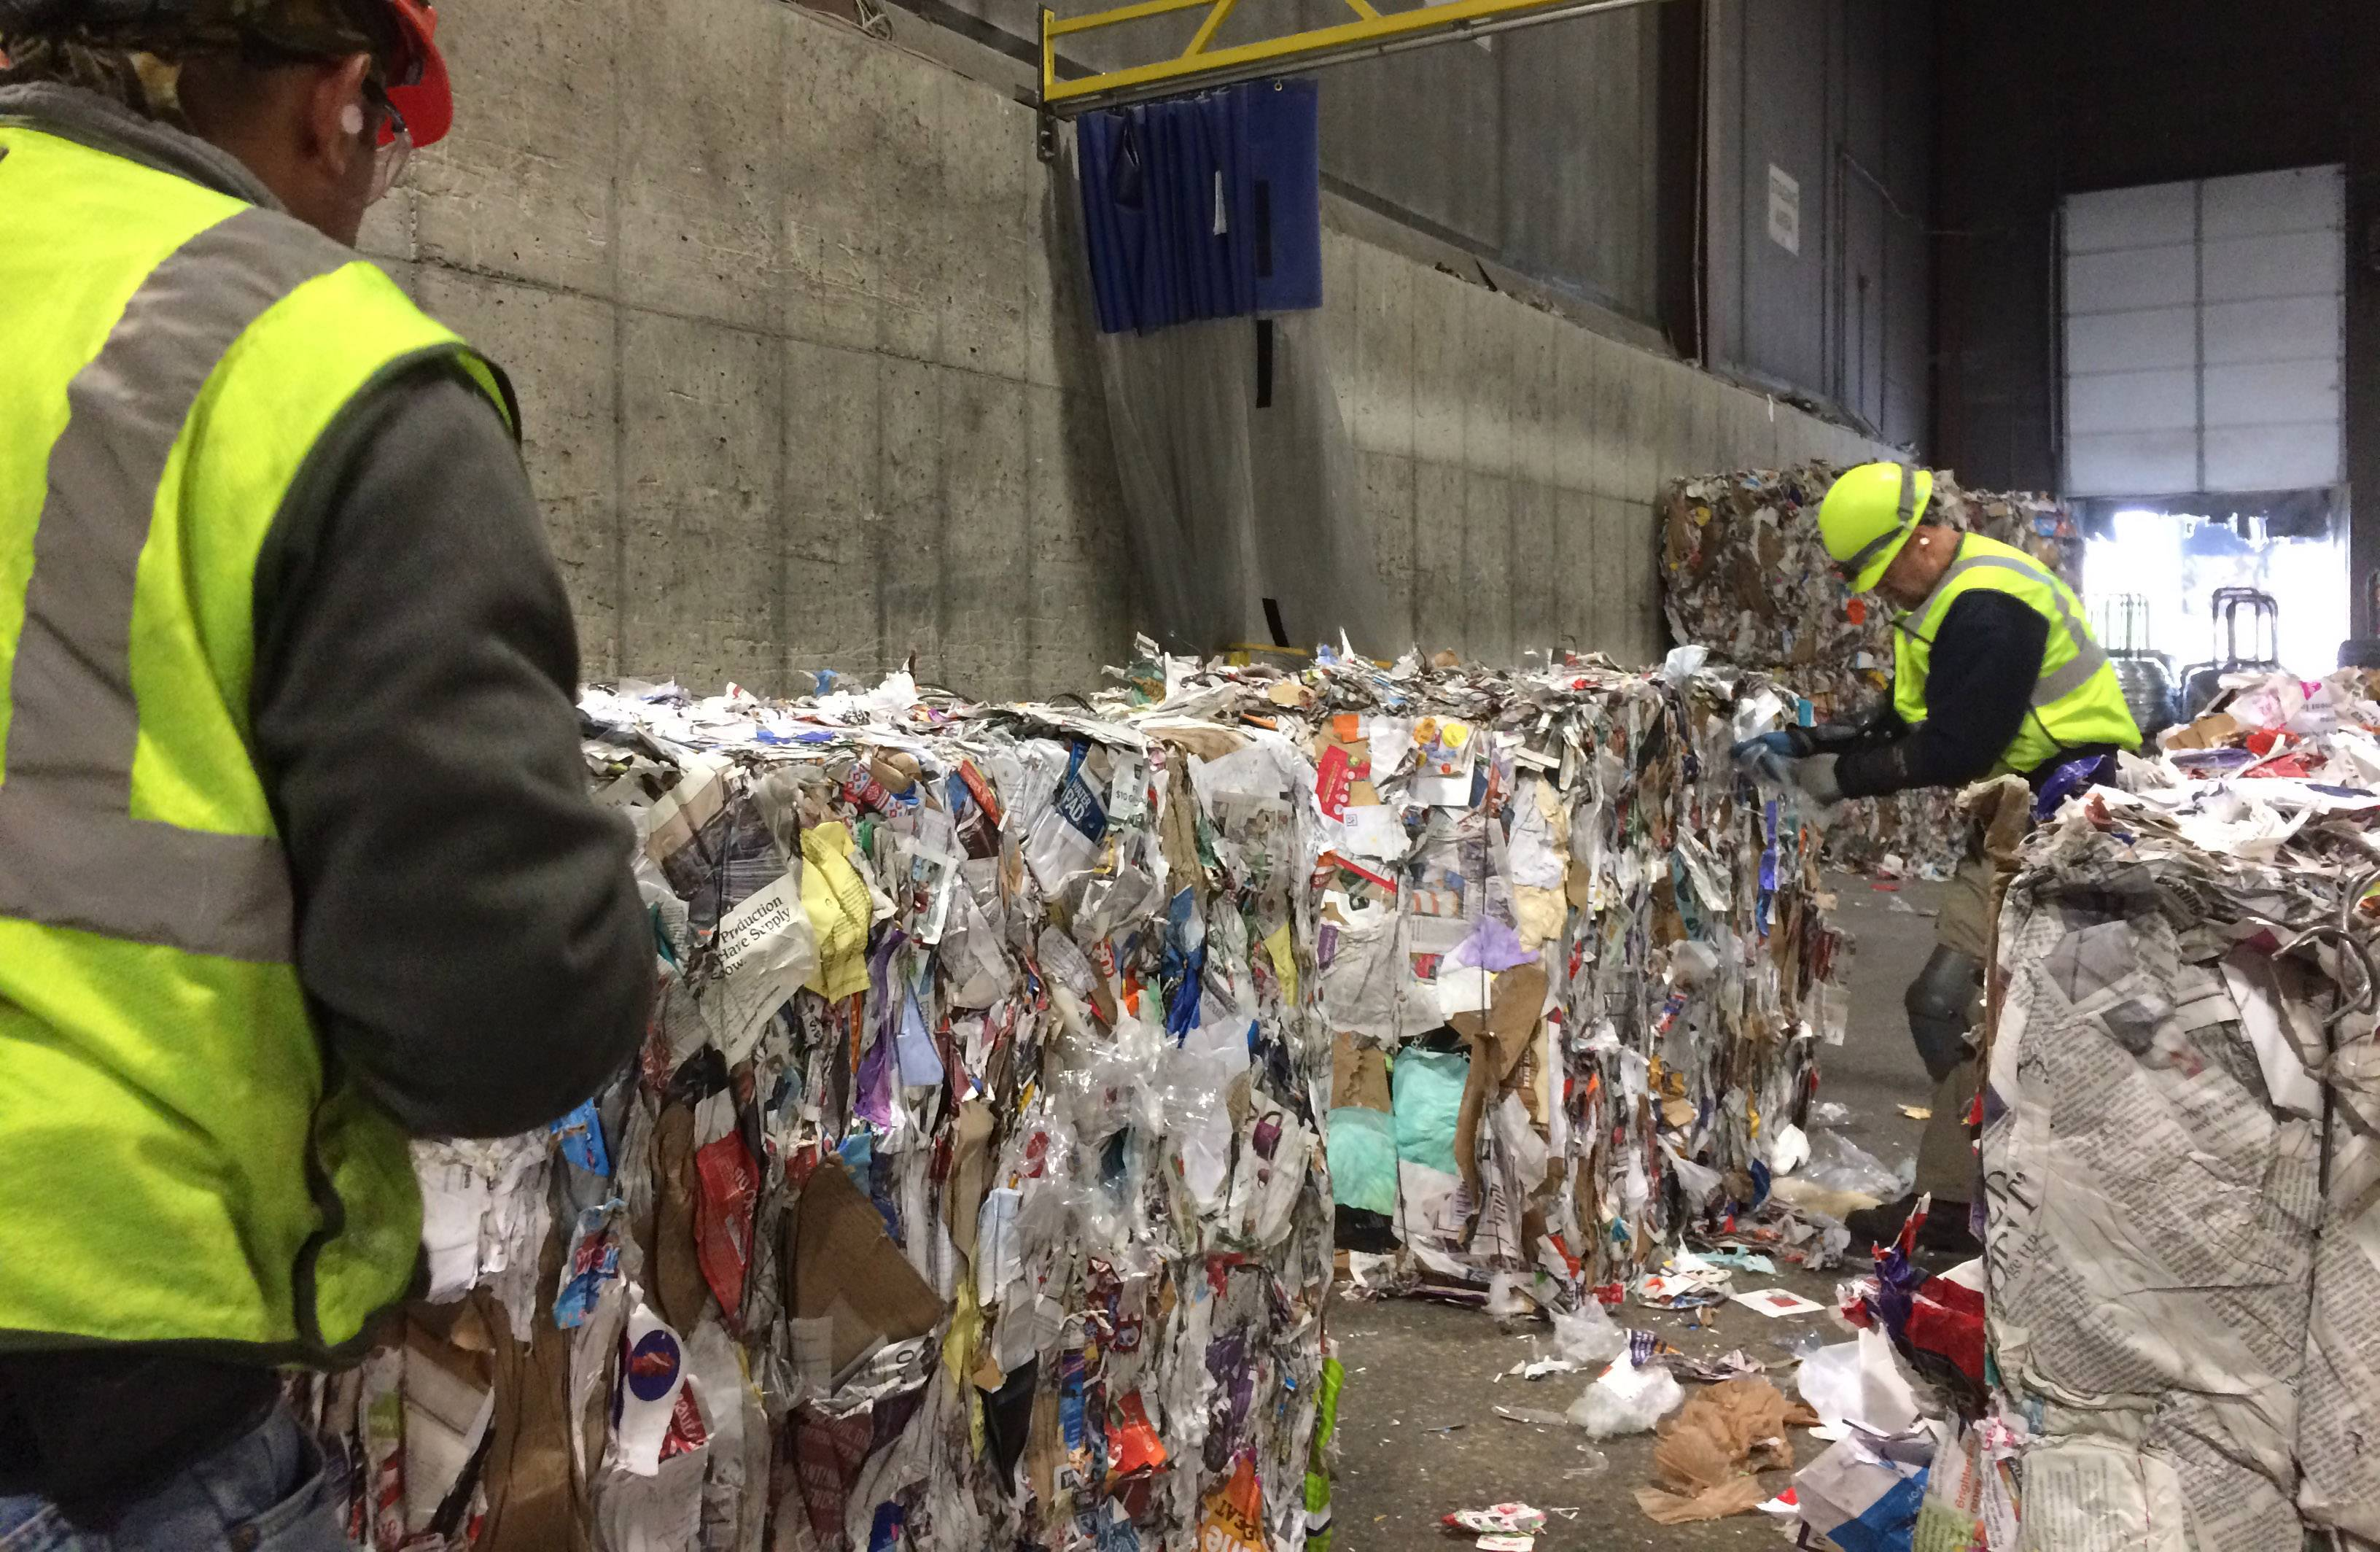 Workers examine one-ton bales of mixed paper for contaminants, such as plastic bags, at the Waste Management processing facility in Grayslake.